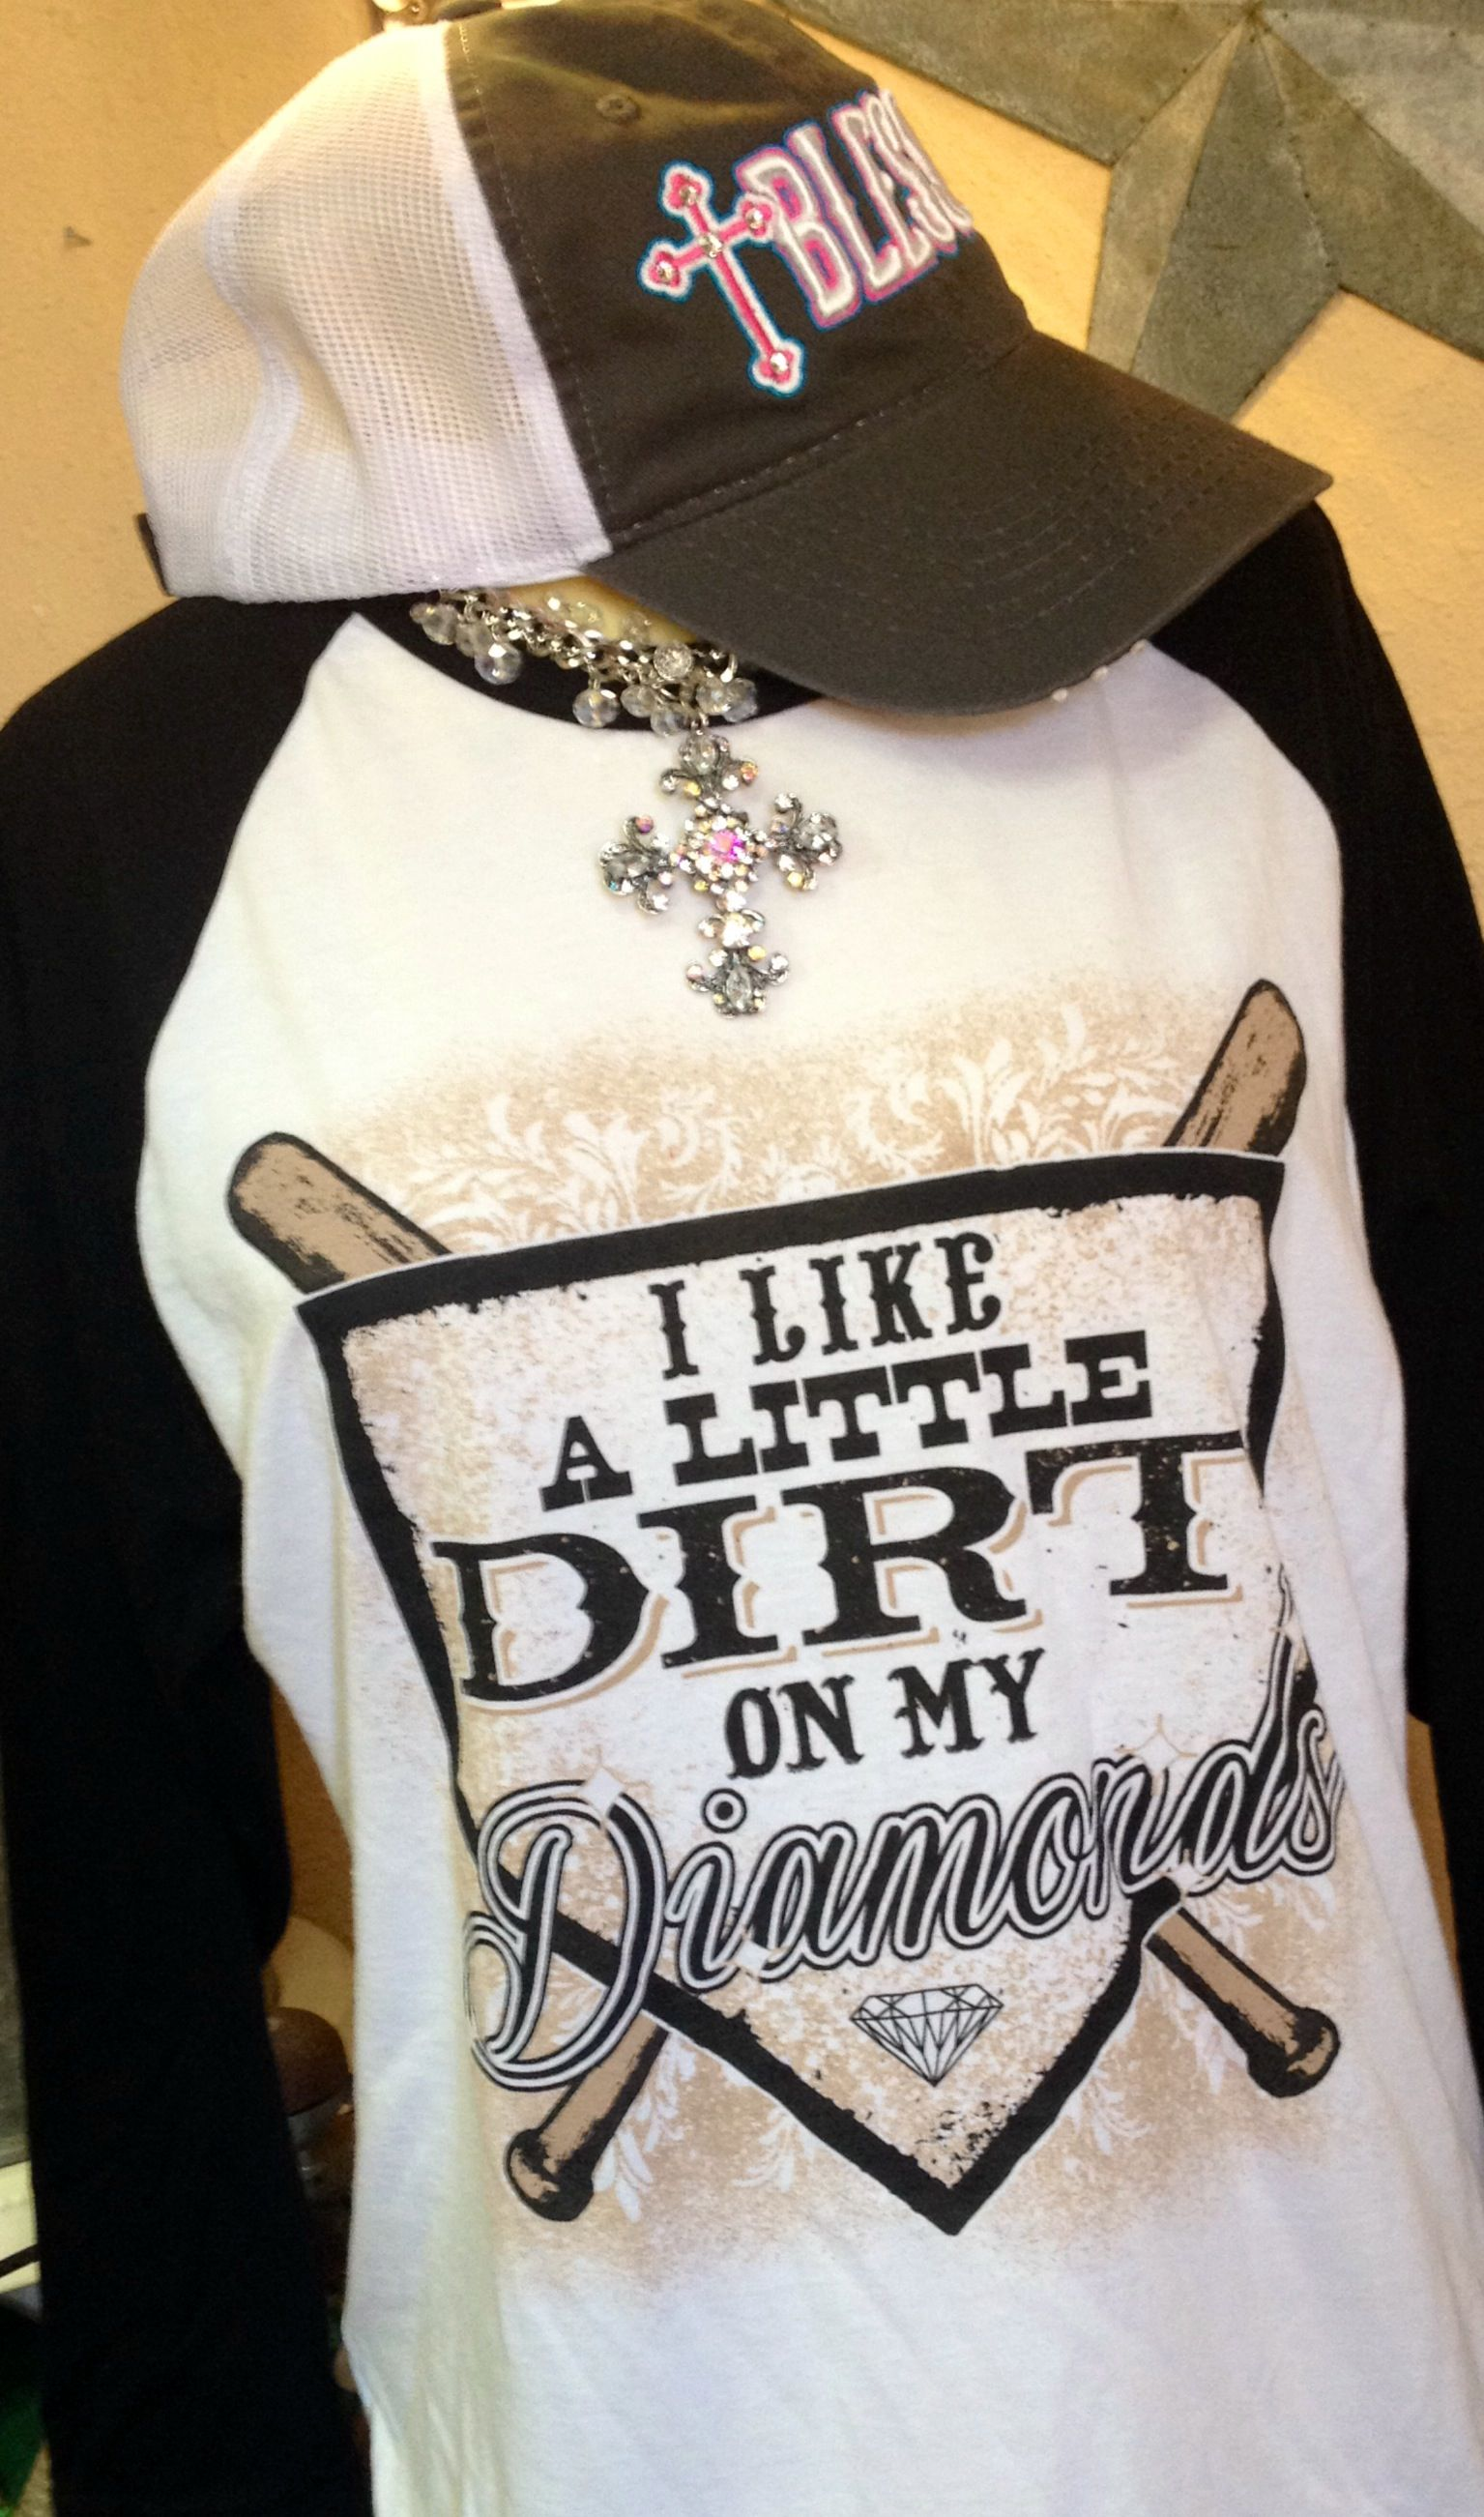 Free shipping, I Like a Little dirt on my diamonds, graphic tee, softball shirt, raglan, jersey, softball mom, sports shirt